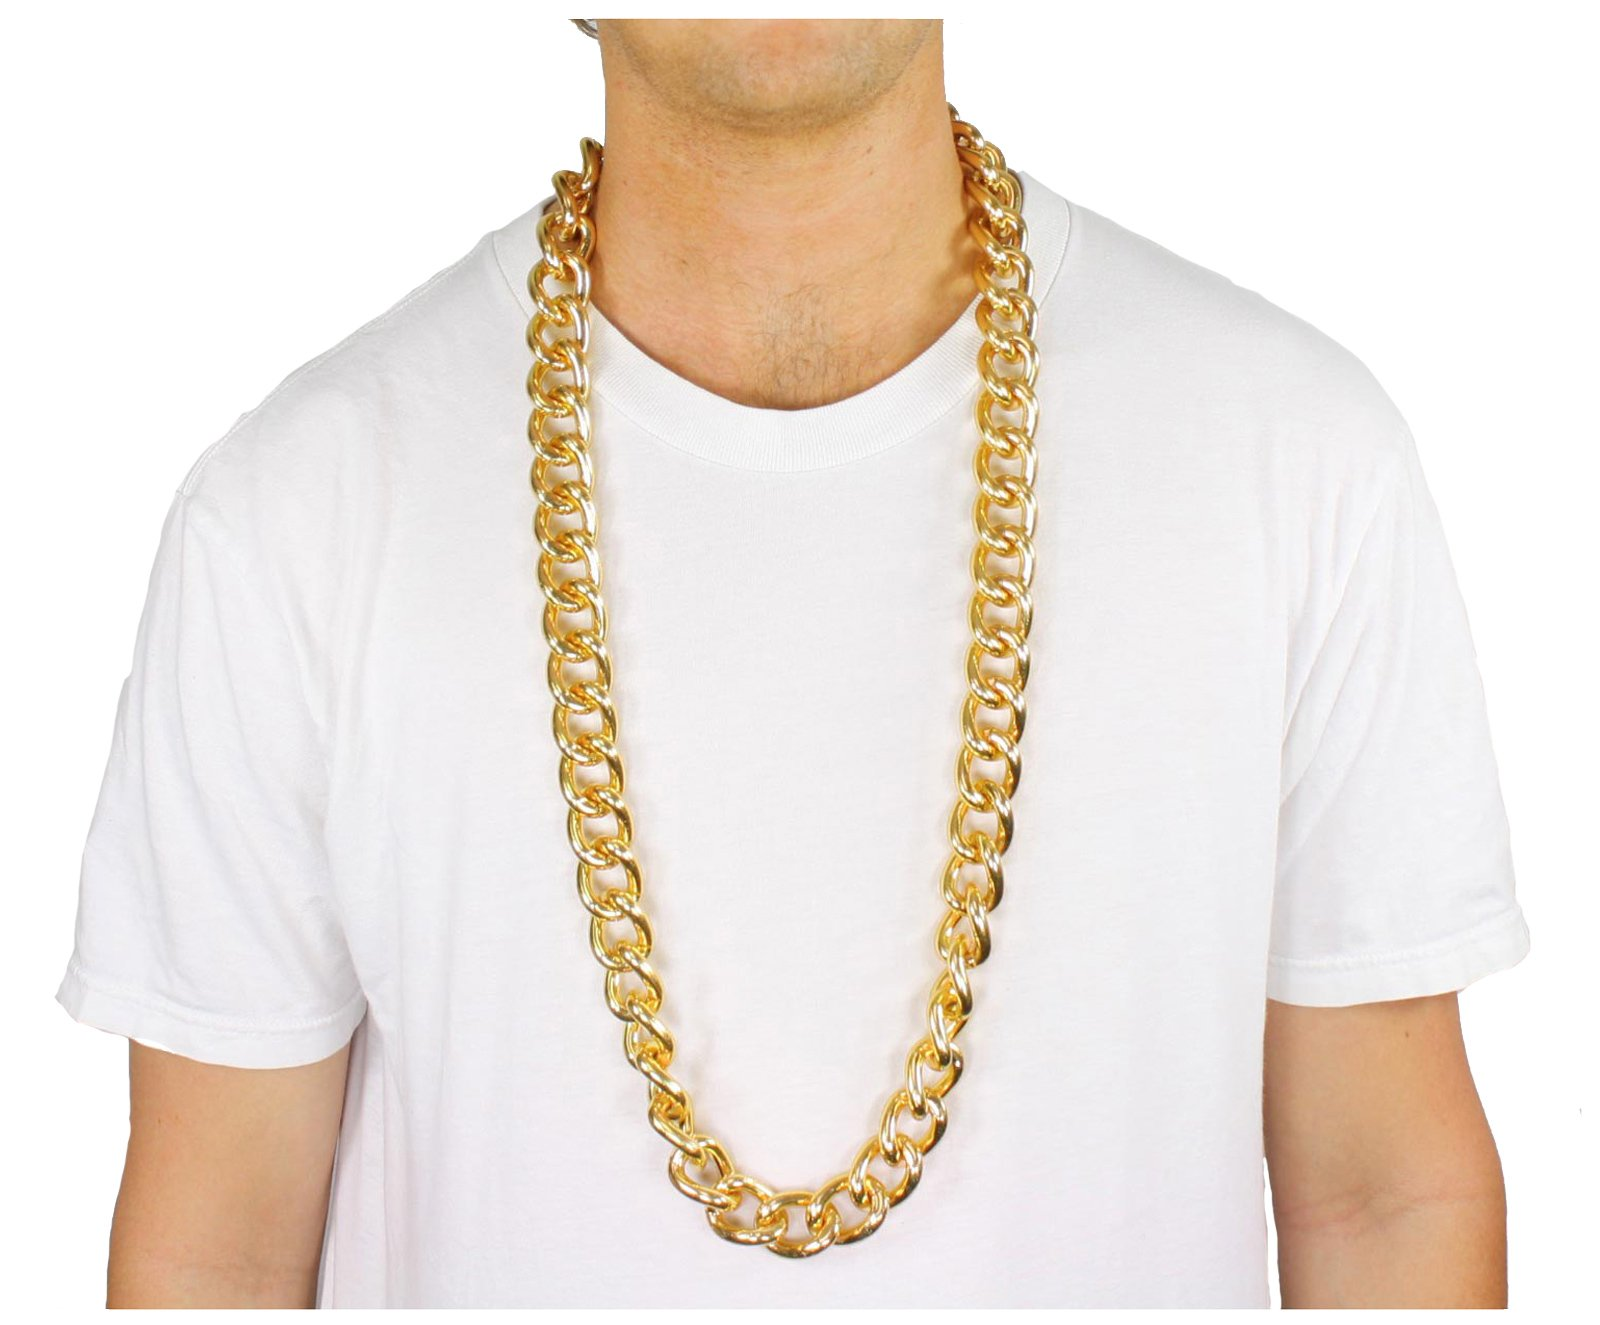 40'' Thick Gold Metal Link Chain Necklace Old School Rapper Costume Bling!!